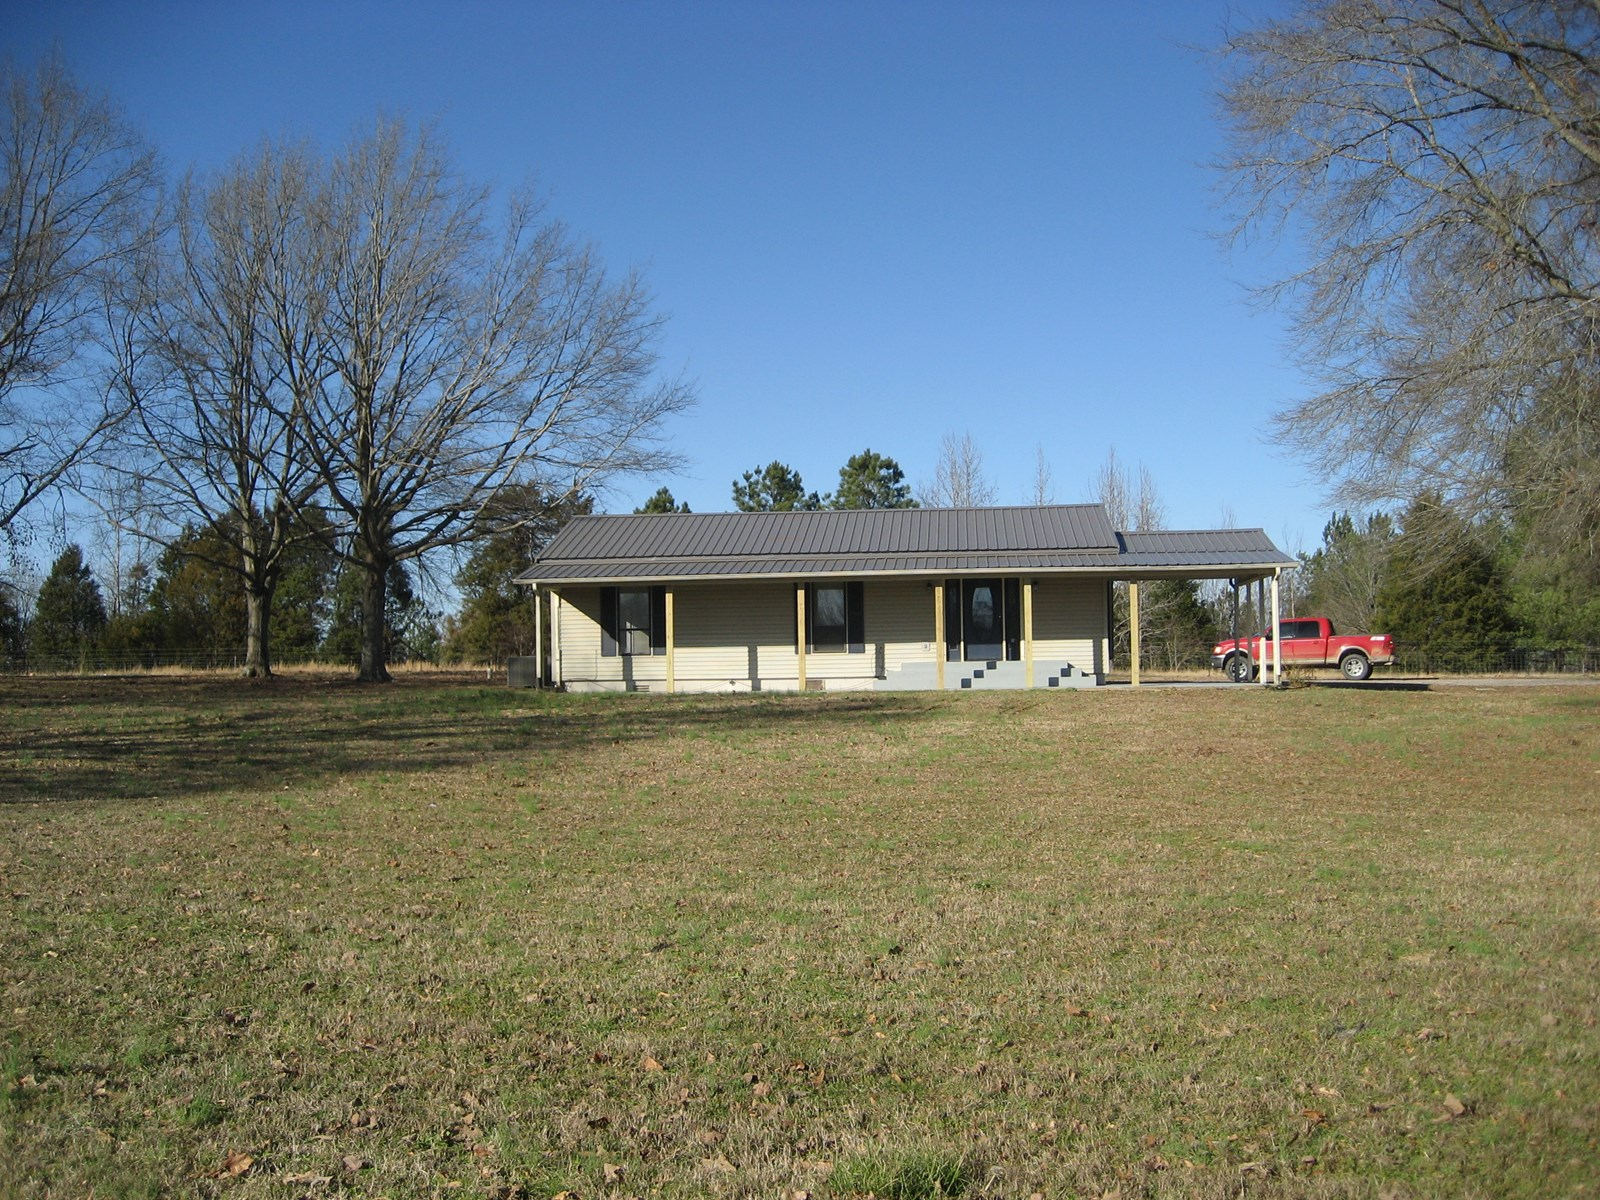 3 BR HOME FOR SALE IN ADAMSVILLE, TN – NO RESTRICTIONS